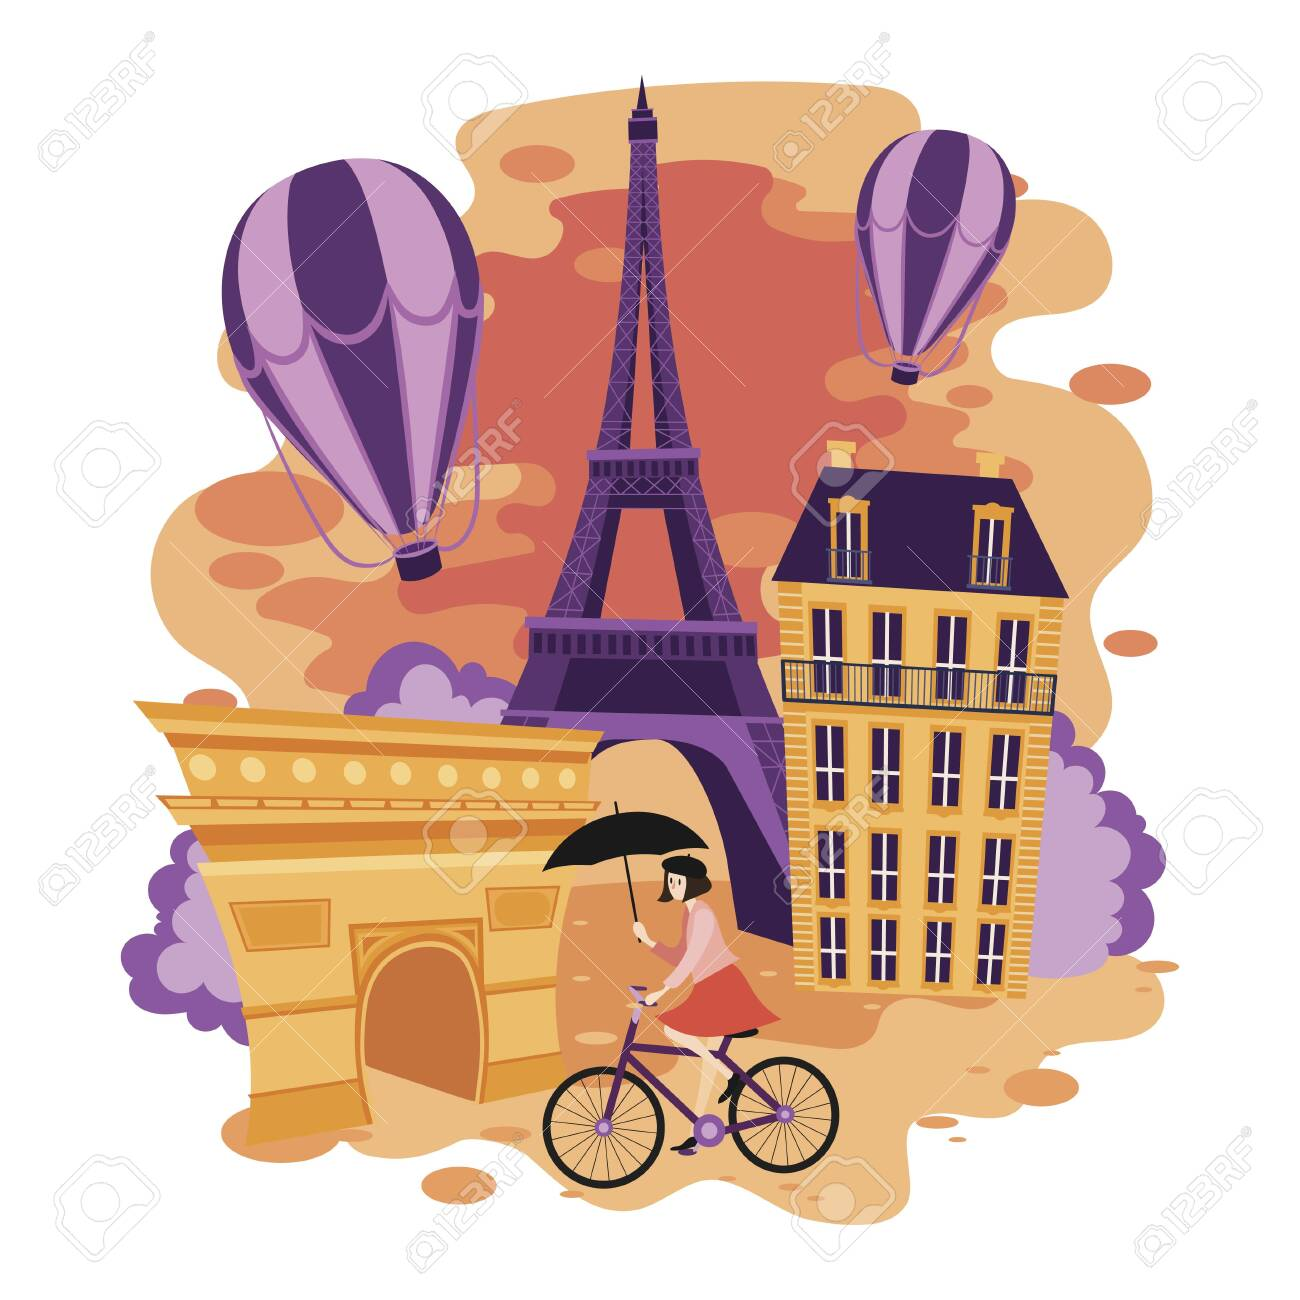 Landscape Of Paris Cartoon Illustration Of The Sights Of France Royalty Free Cliparts Vectors And Stock Illustration Image 129376003